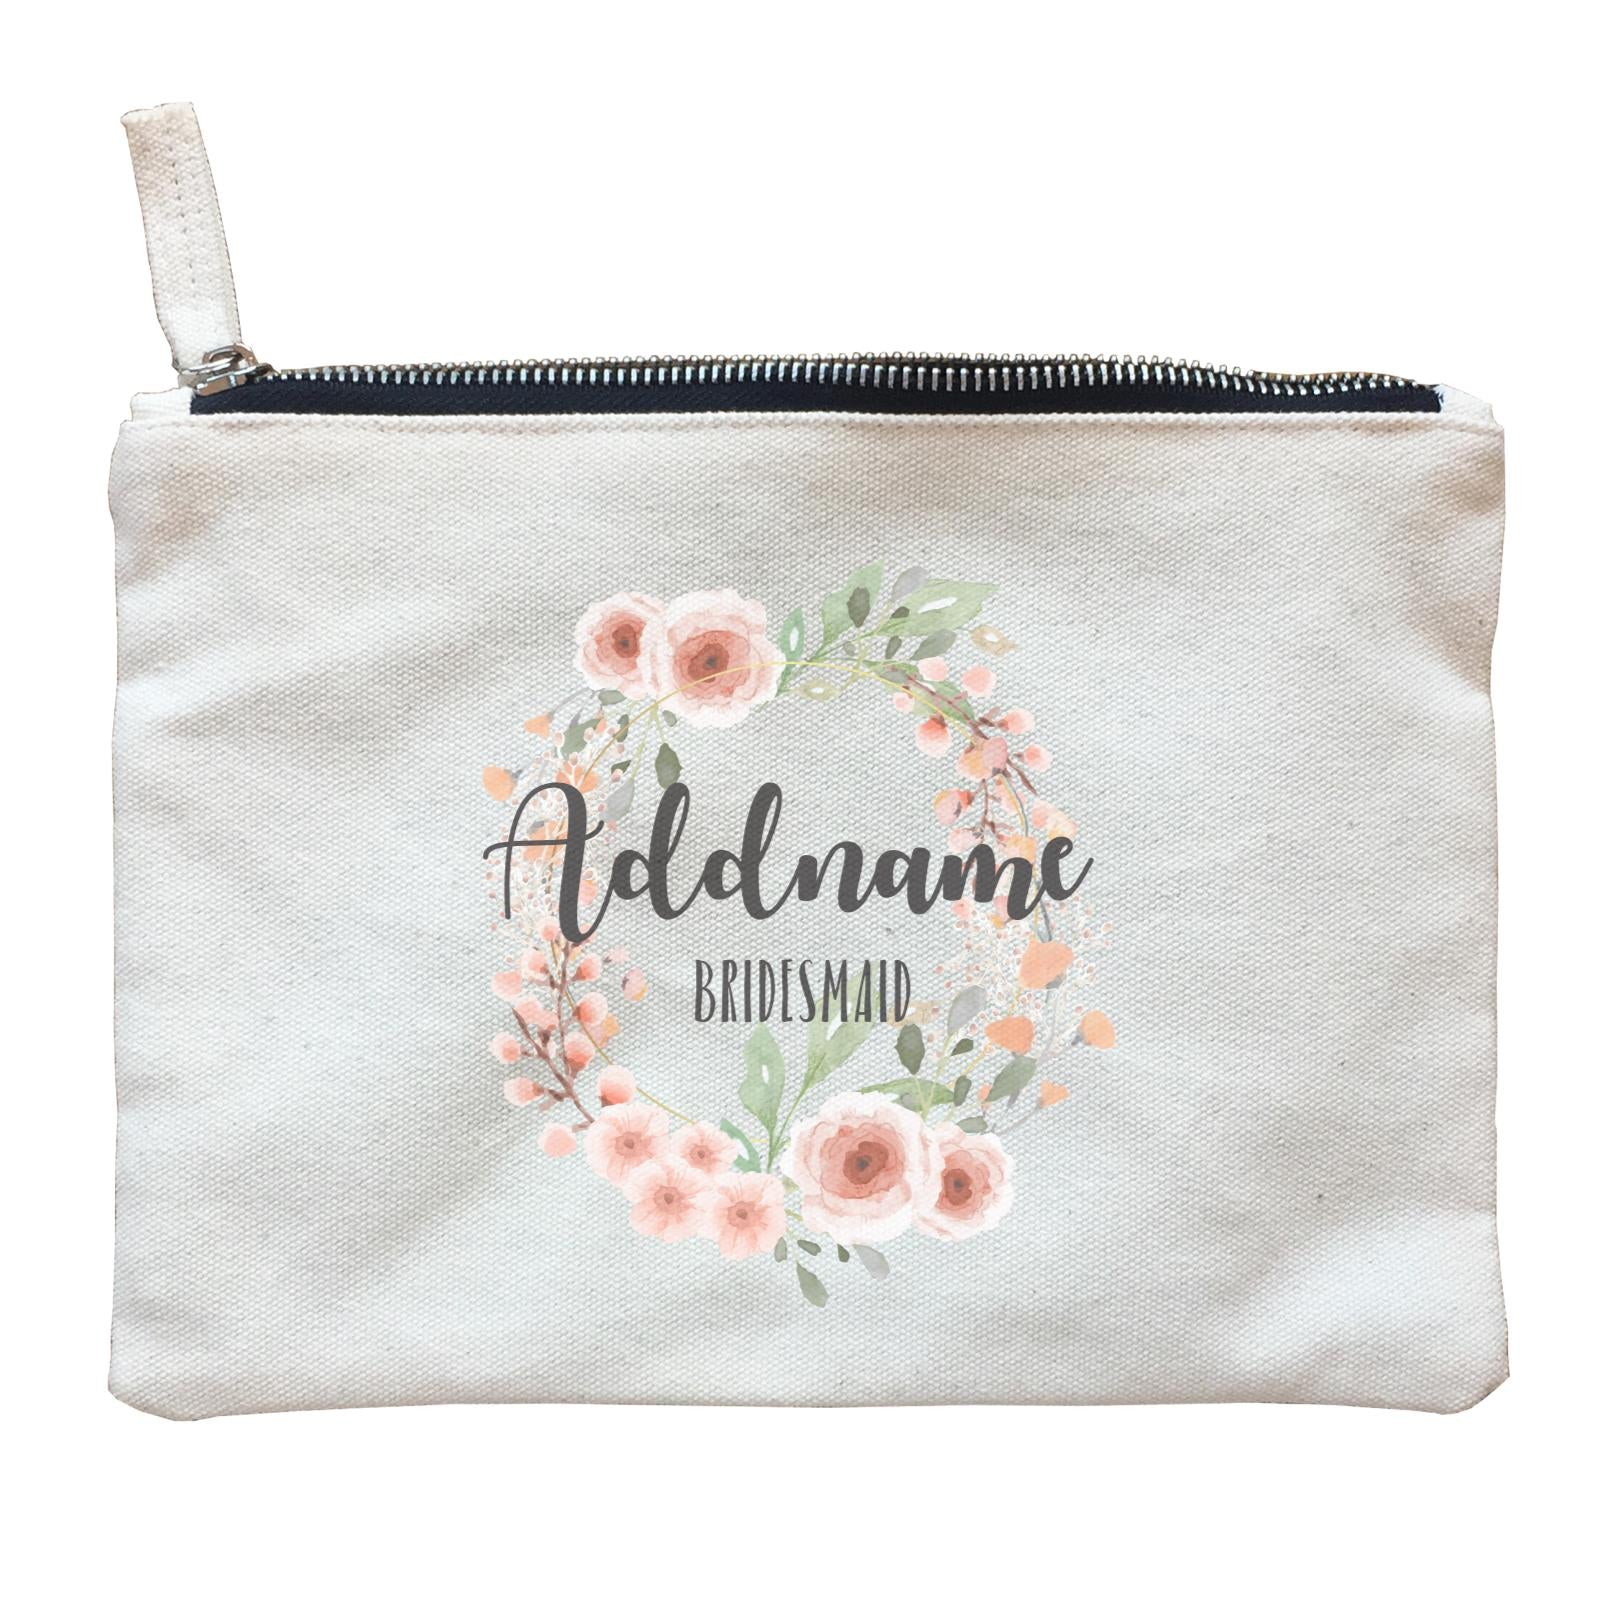 Bridesmaid Floral Sweet 2 Watercolour Flower Wreath Bridesmaid Addname Zipper Pouch